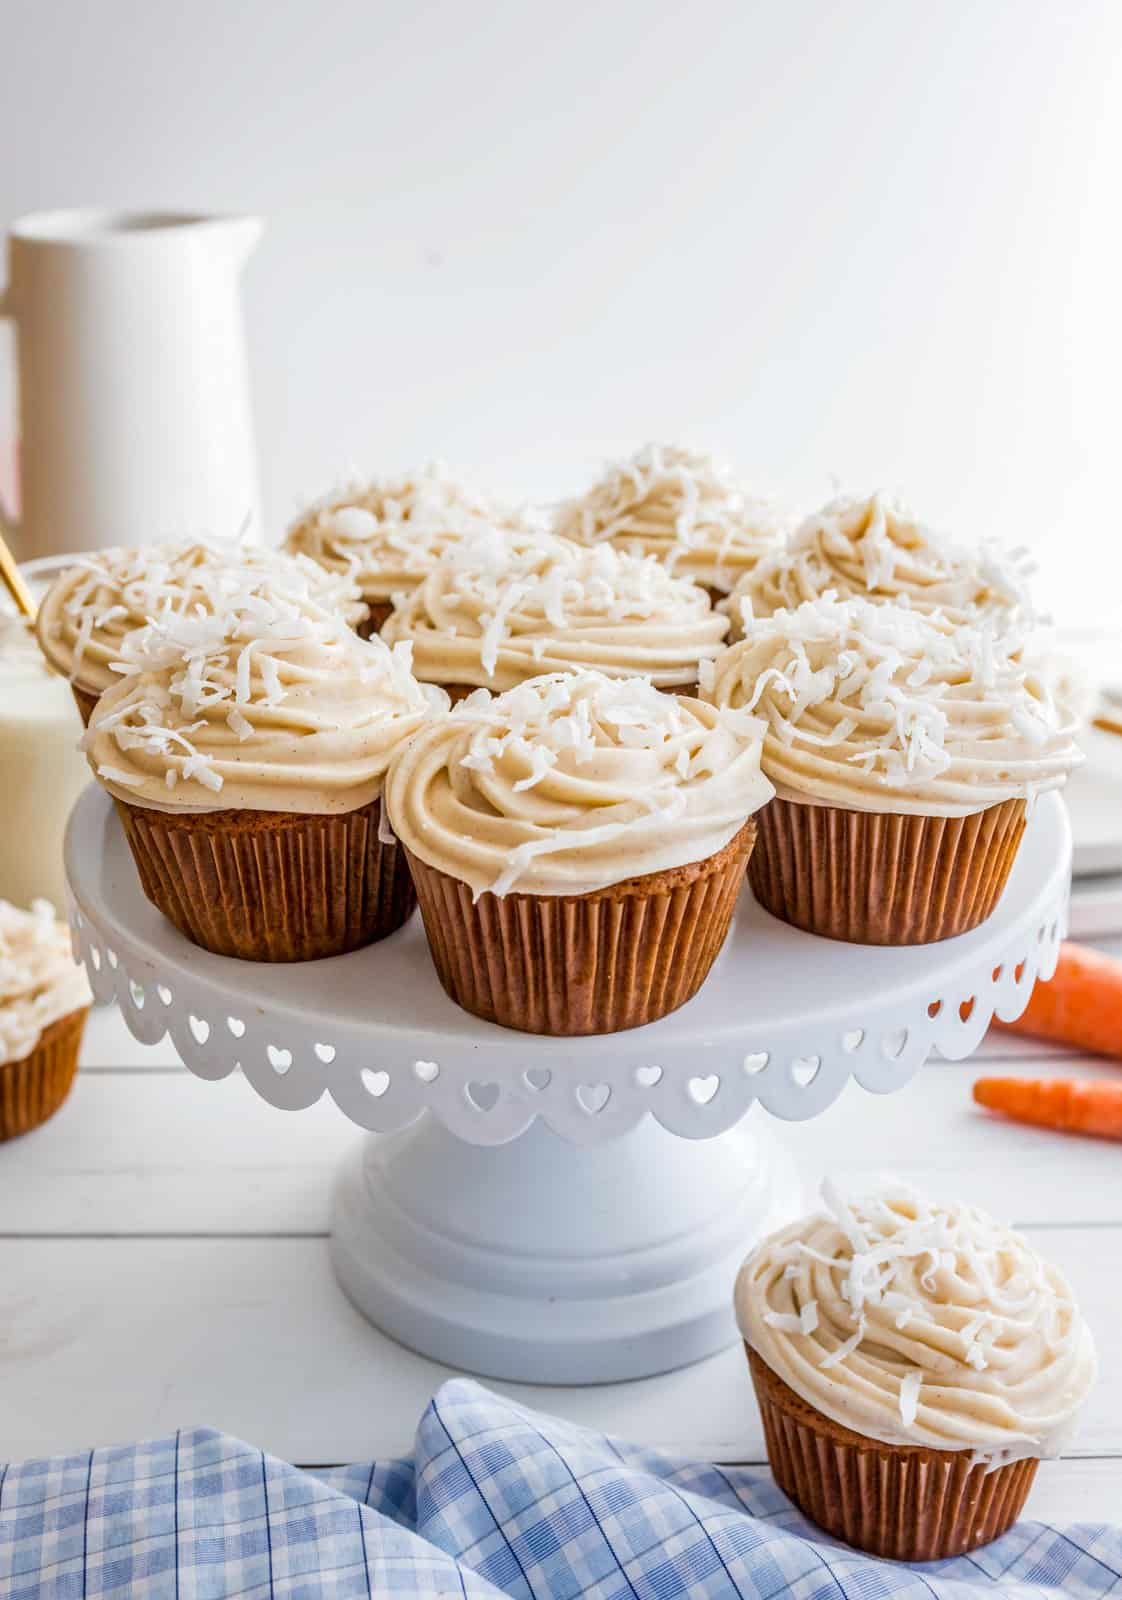 Cake stand with multiple Carrot Cake Cupcakes